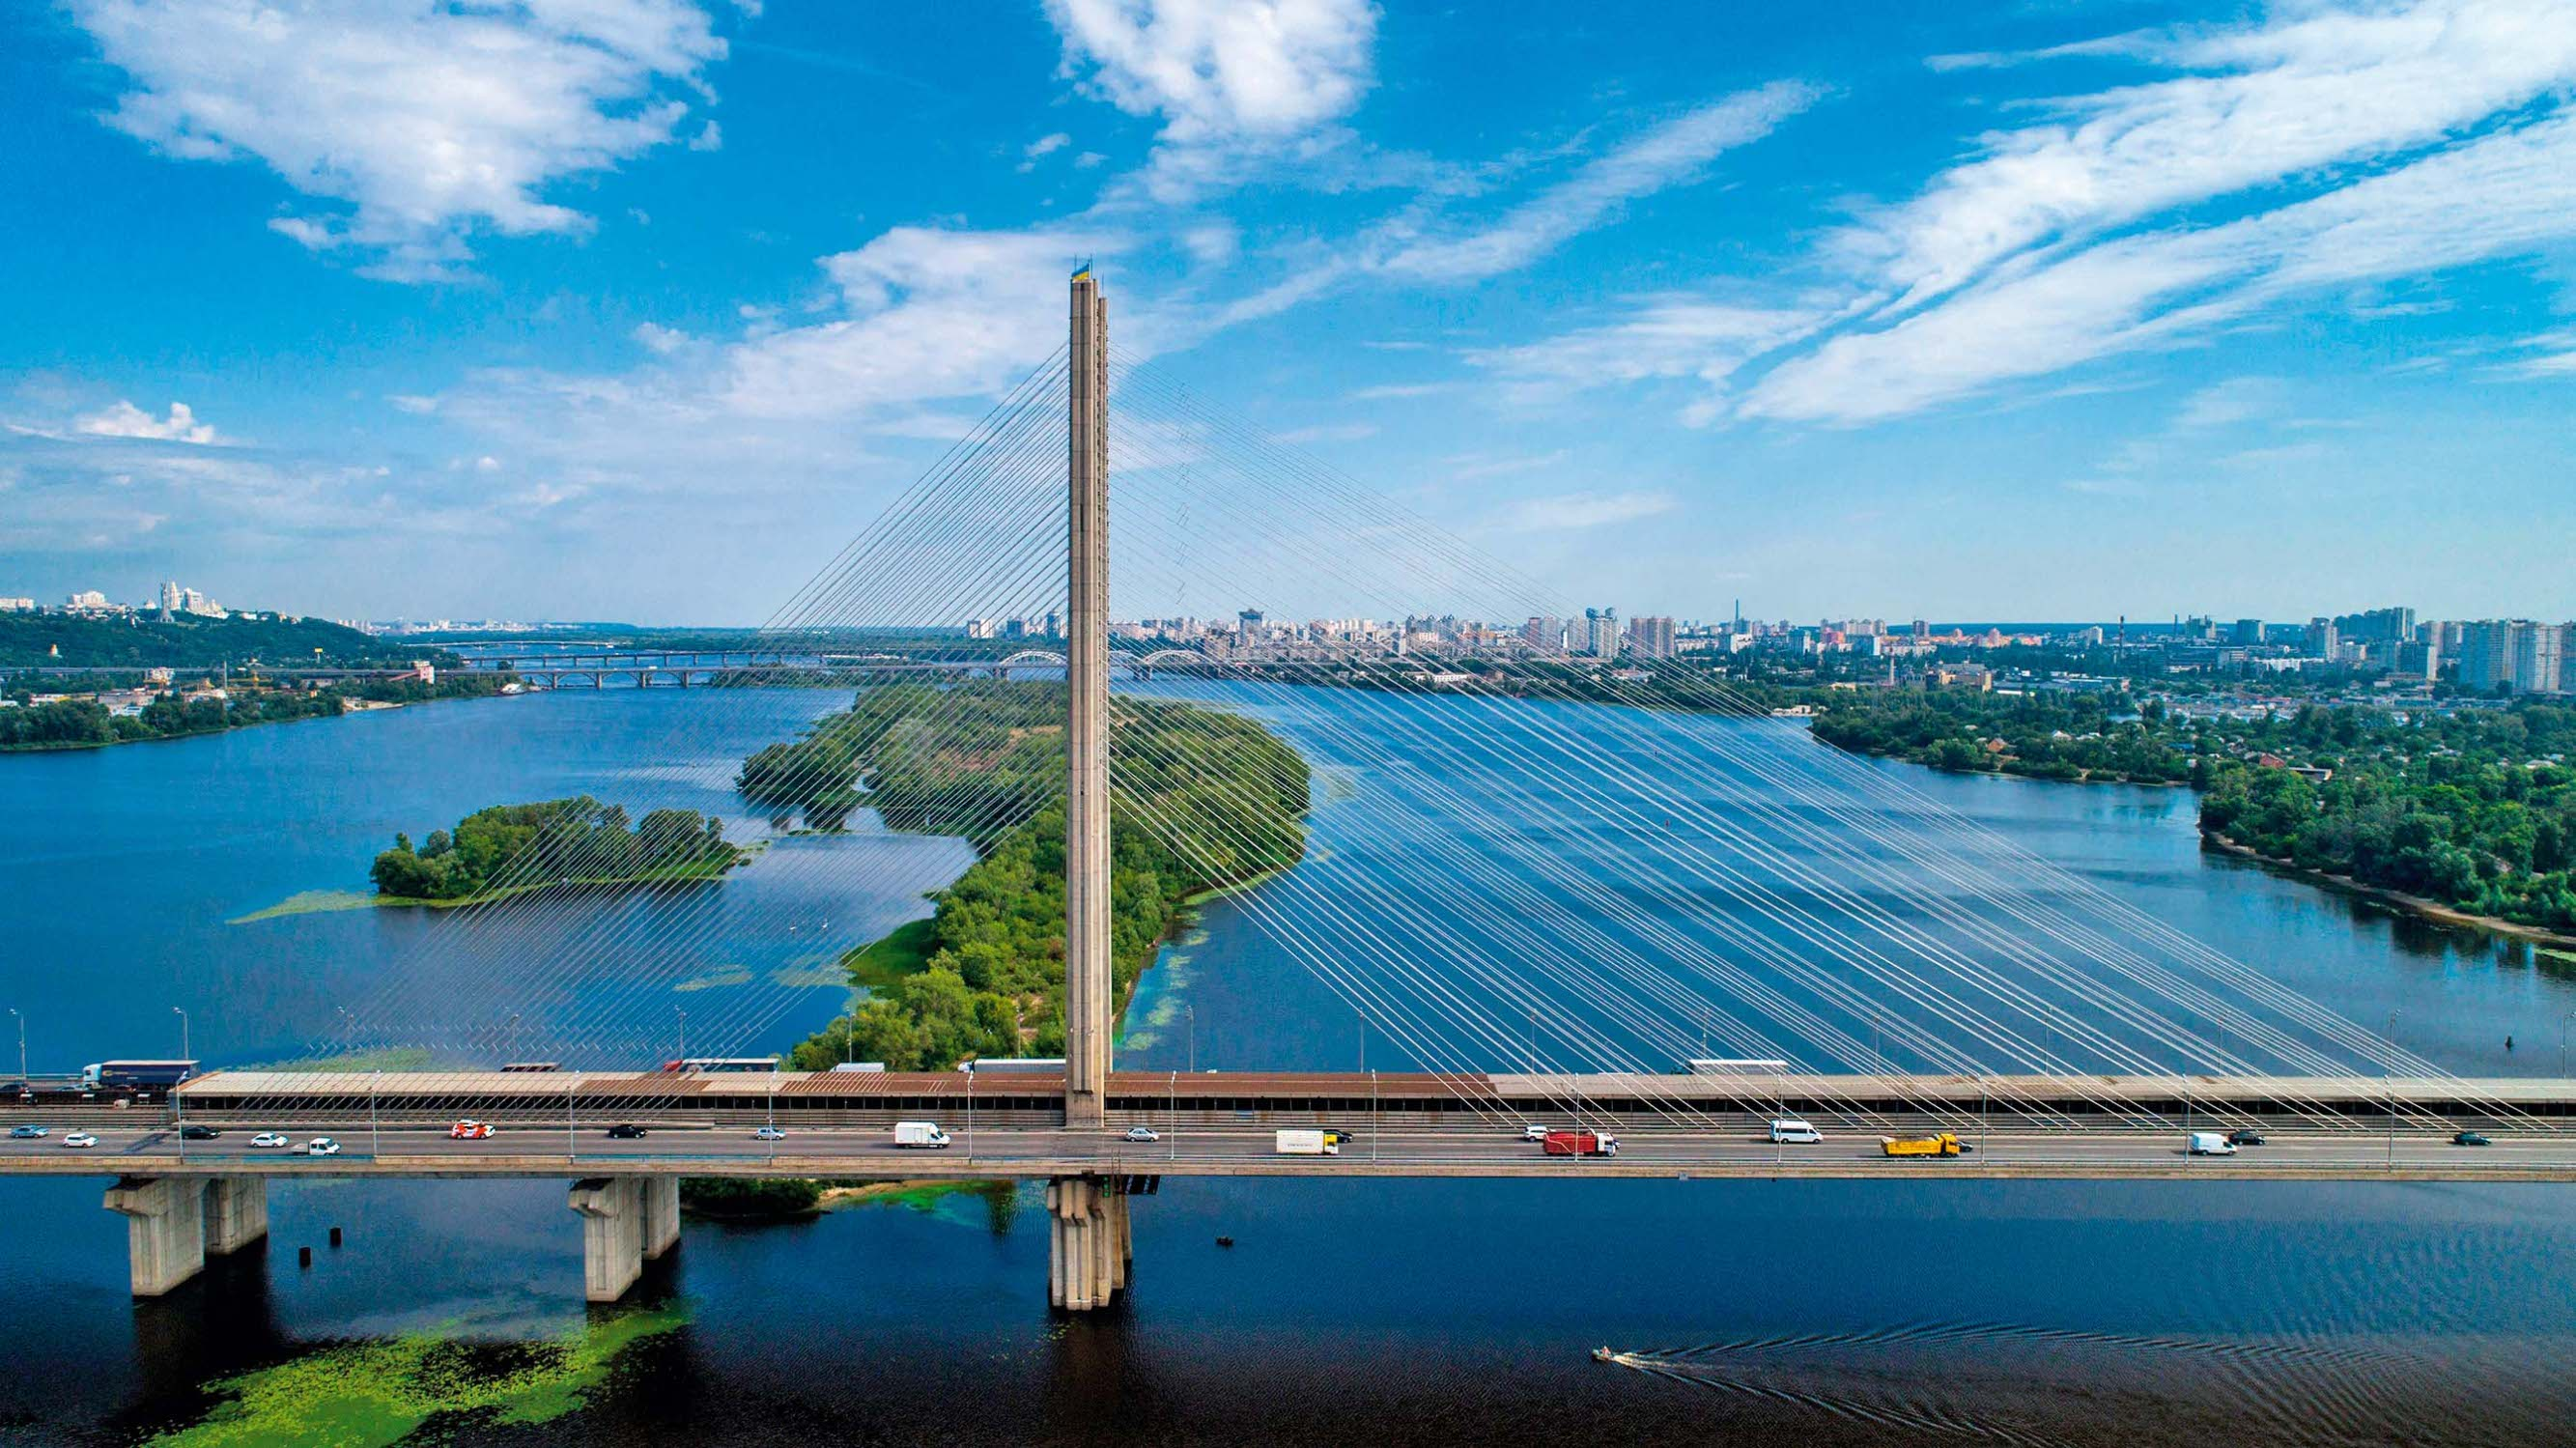 Aerial view of the South Bridge. Aerial view of South subway cable bridge. Kiev, Ukraine, Image: 376258529, License: Royalty-free, Restrictions: , Model Release: no, Credit line: Profimedia, Alamy